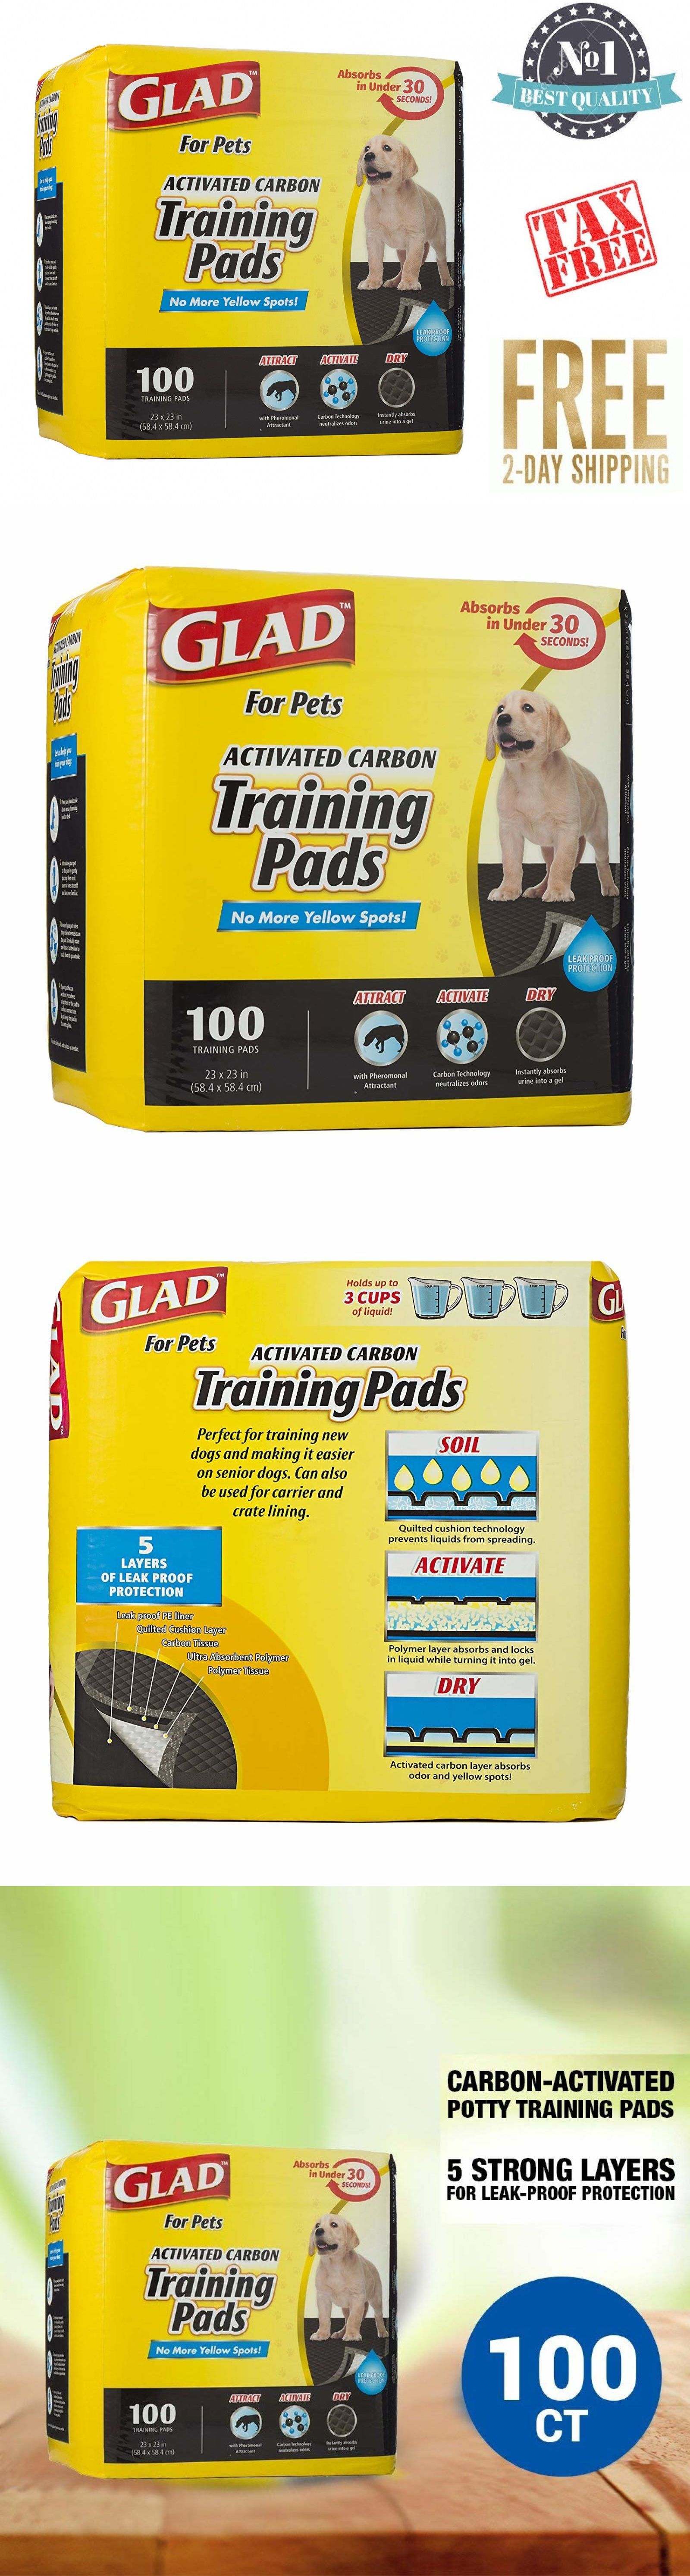 House Training Pads 146243 Glad For Pets Training Pads